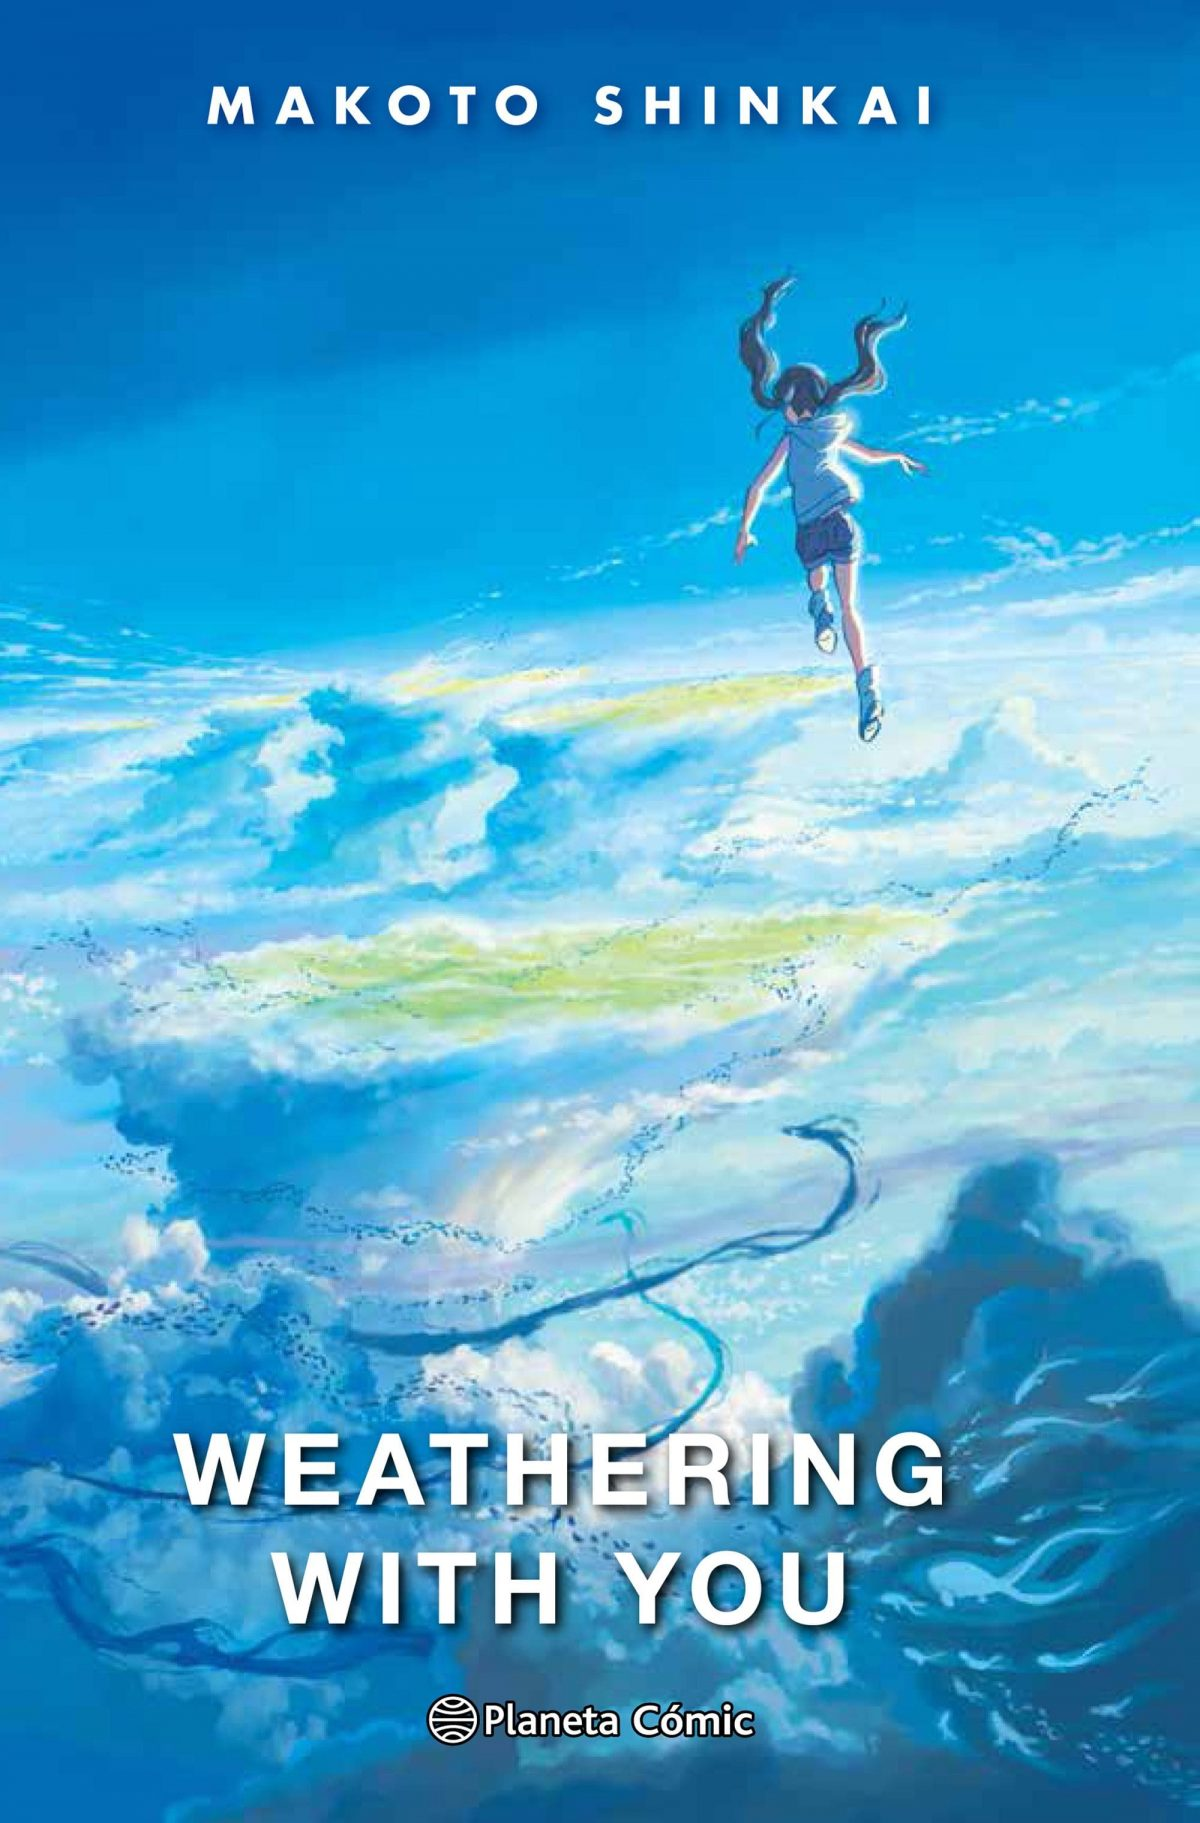 ▷ WEATHERING WITH YOU | La exitosa novela de Makoto Shinkai ✅